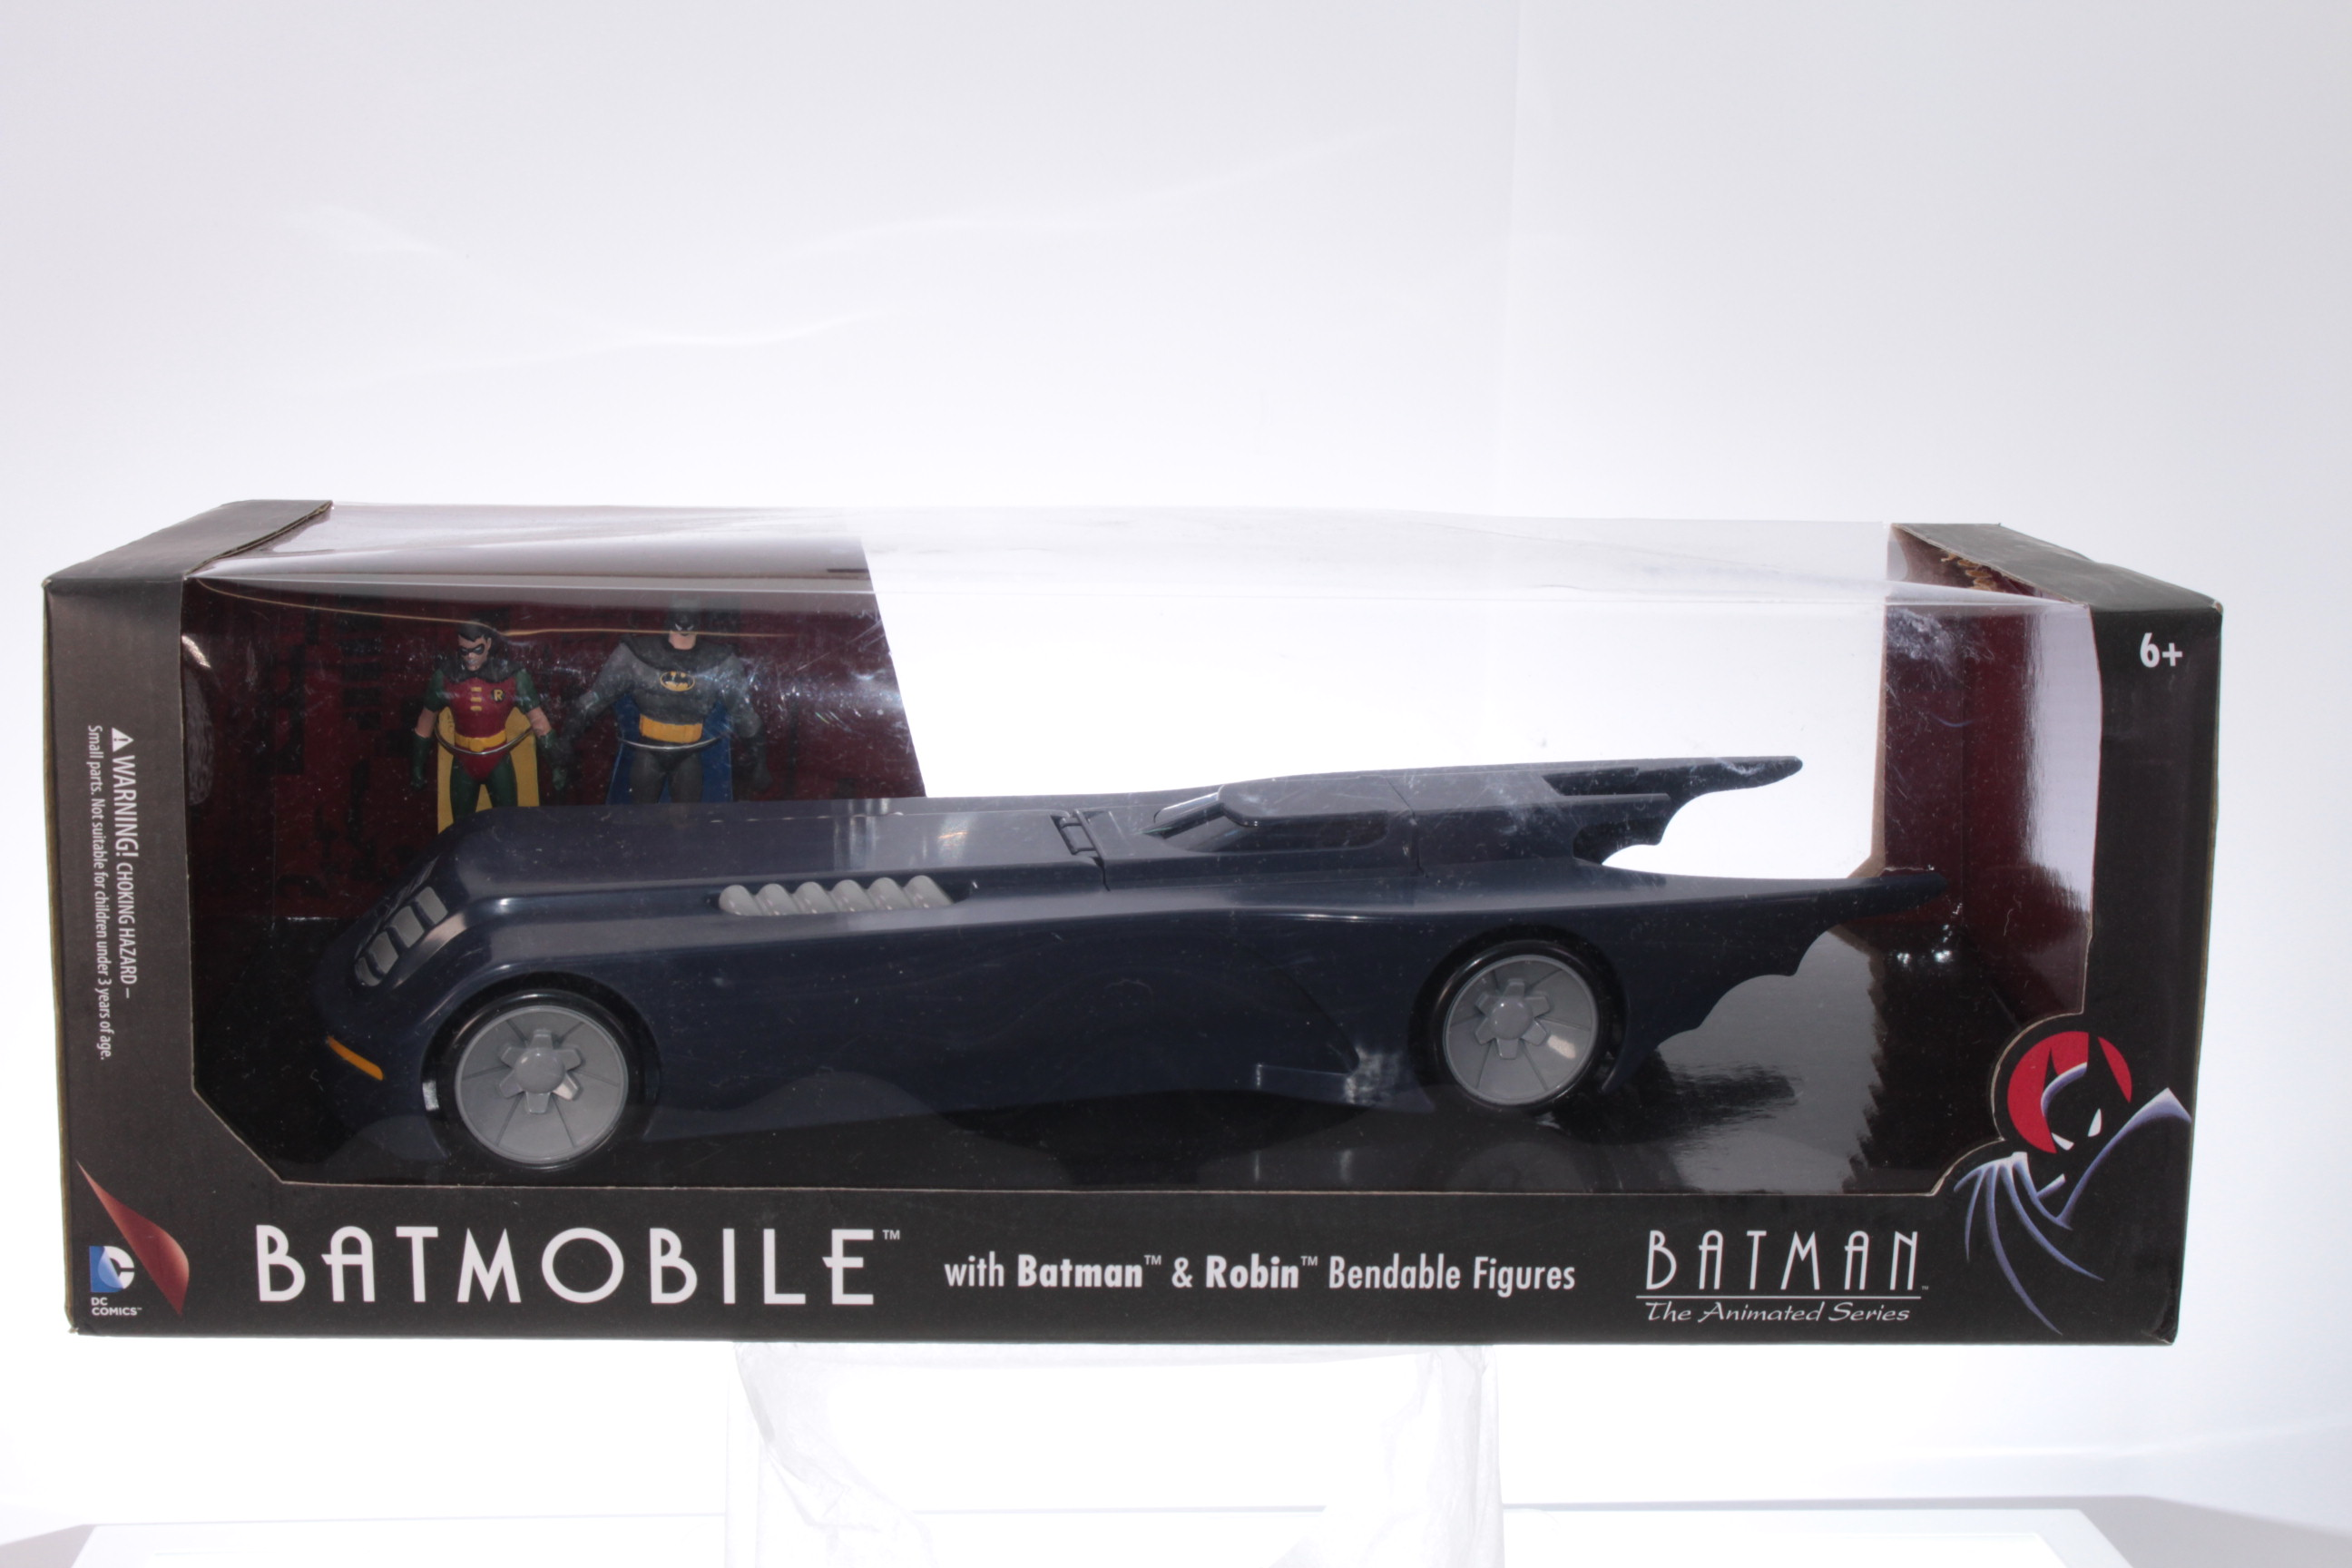 Picture Gallery for NJ Croce DC3933 Batmobile with Bendable Figures